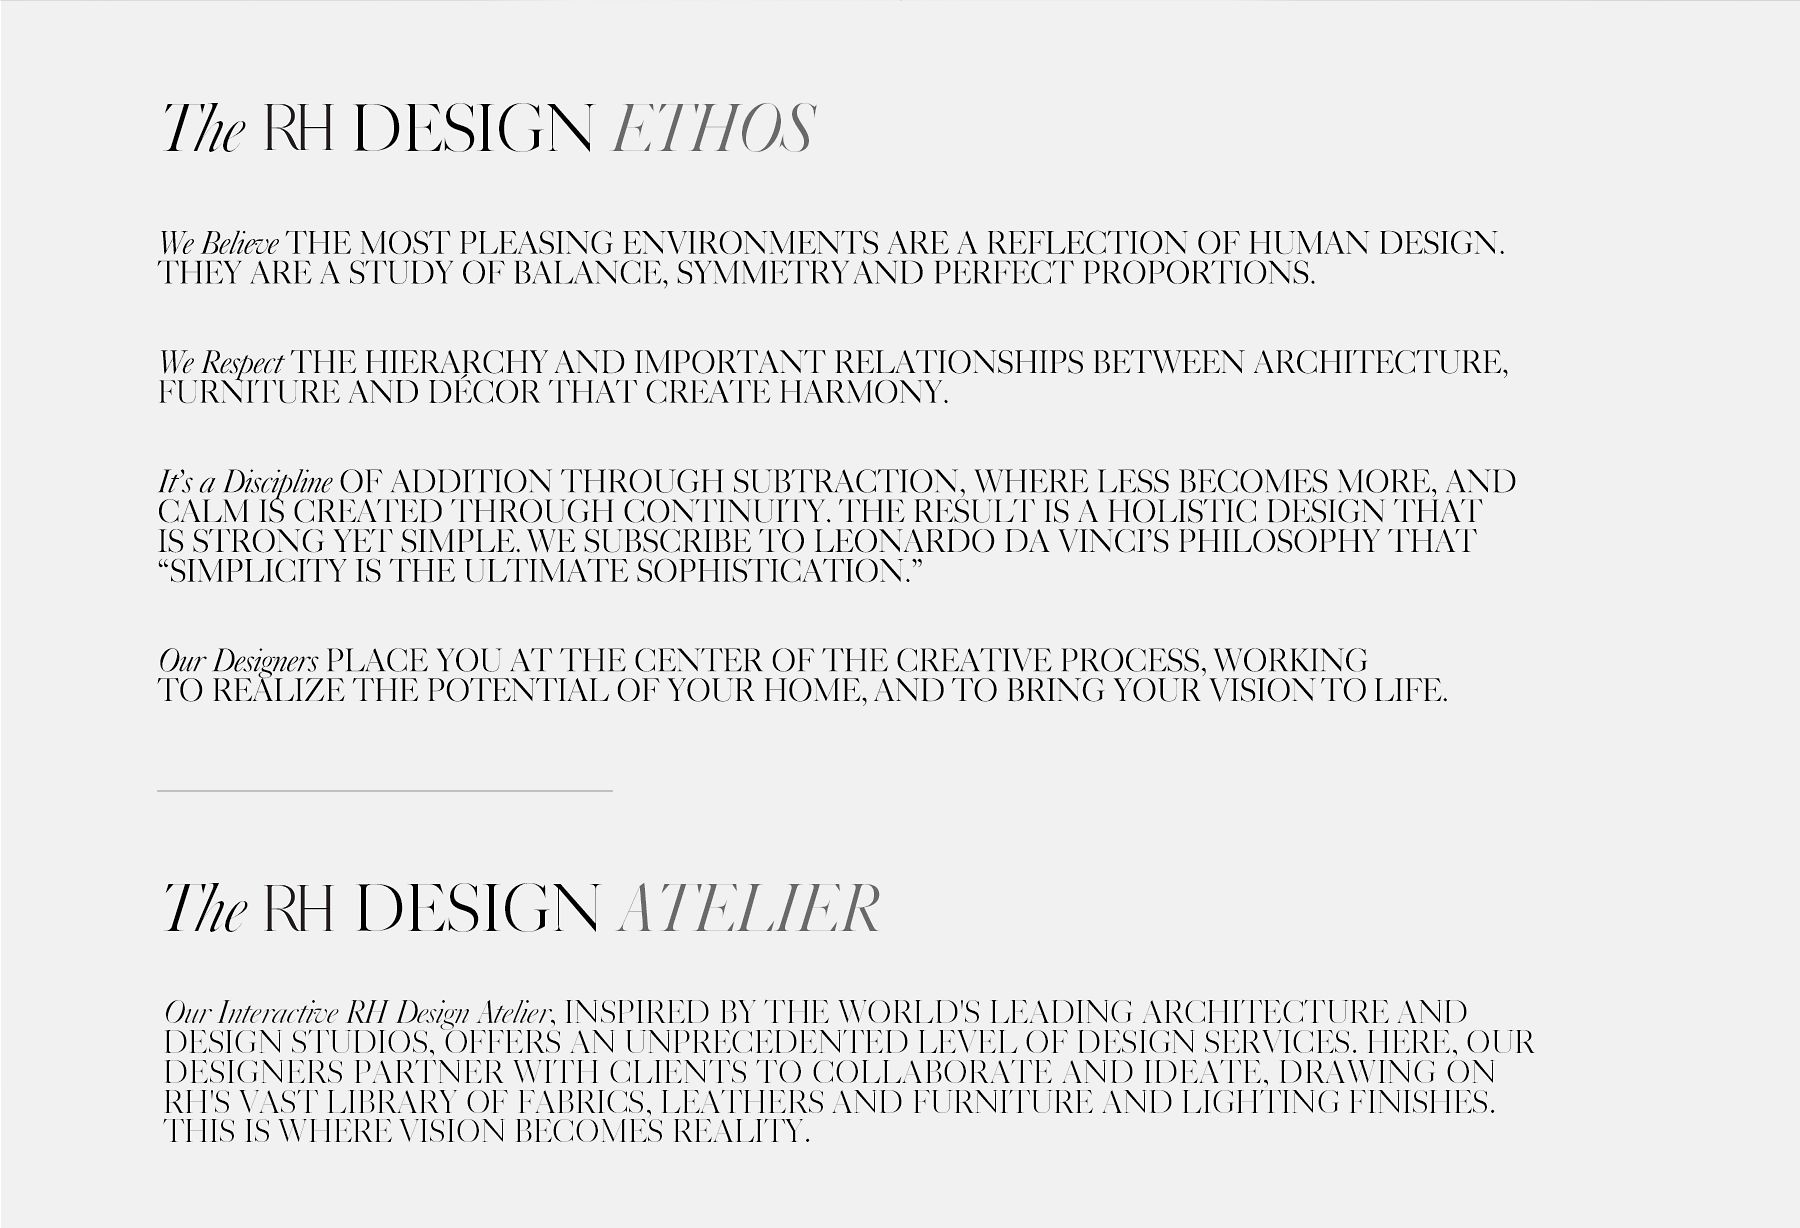 The RH Design Ethos and The RH Design Atelier